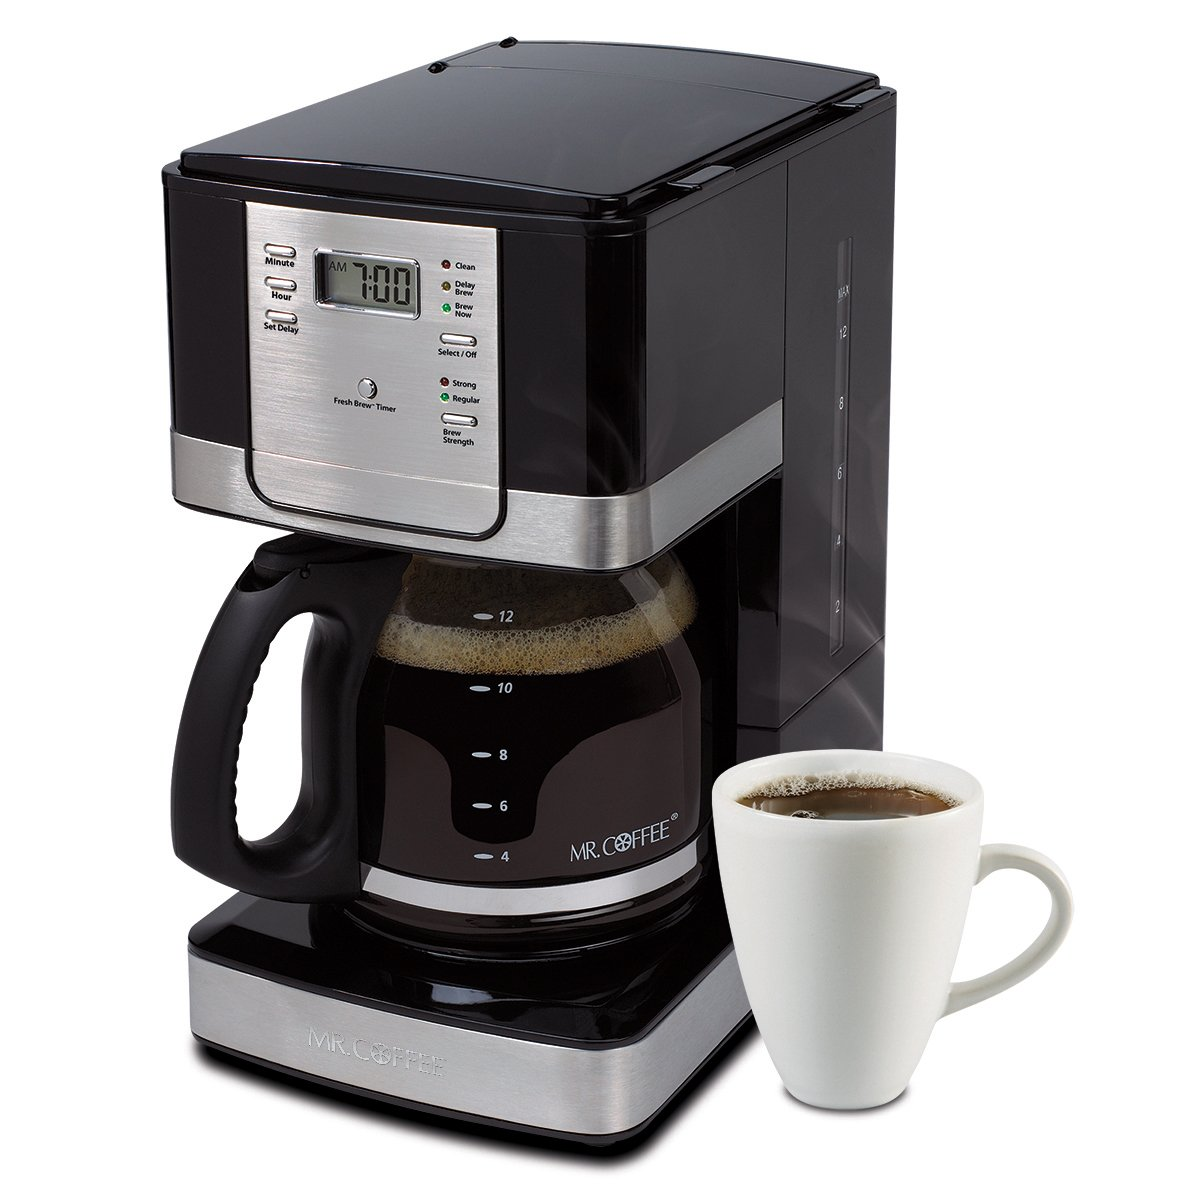 Mr. Coffee Coffee [ミスターコーヒー] Advanced B011BH5AXC Brew 12-Cup プログラマブル プログラマブル コーヒーメーカー Black/Stainless Steel Accents, JWX27-A [並行輸入品] B011BH5AXC, フラワーアトリエ 仁:12793315 --- ijpba.info